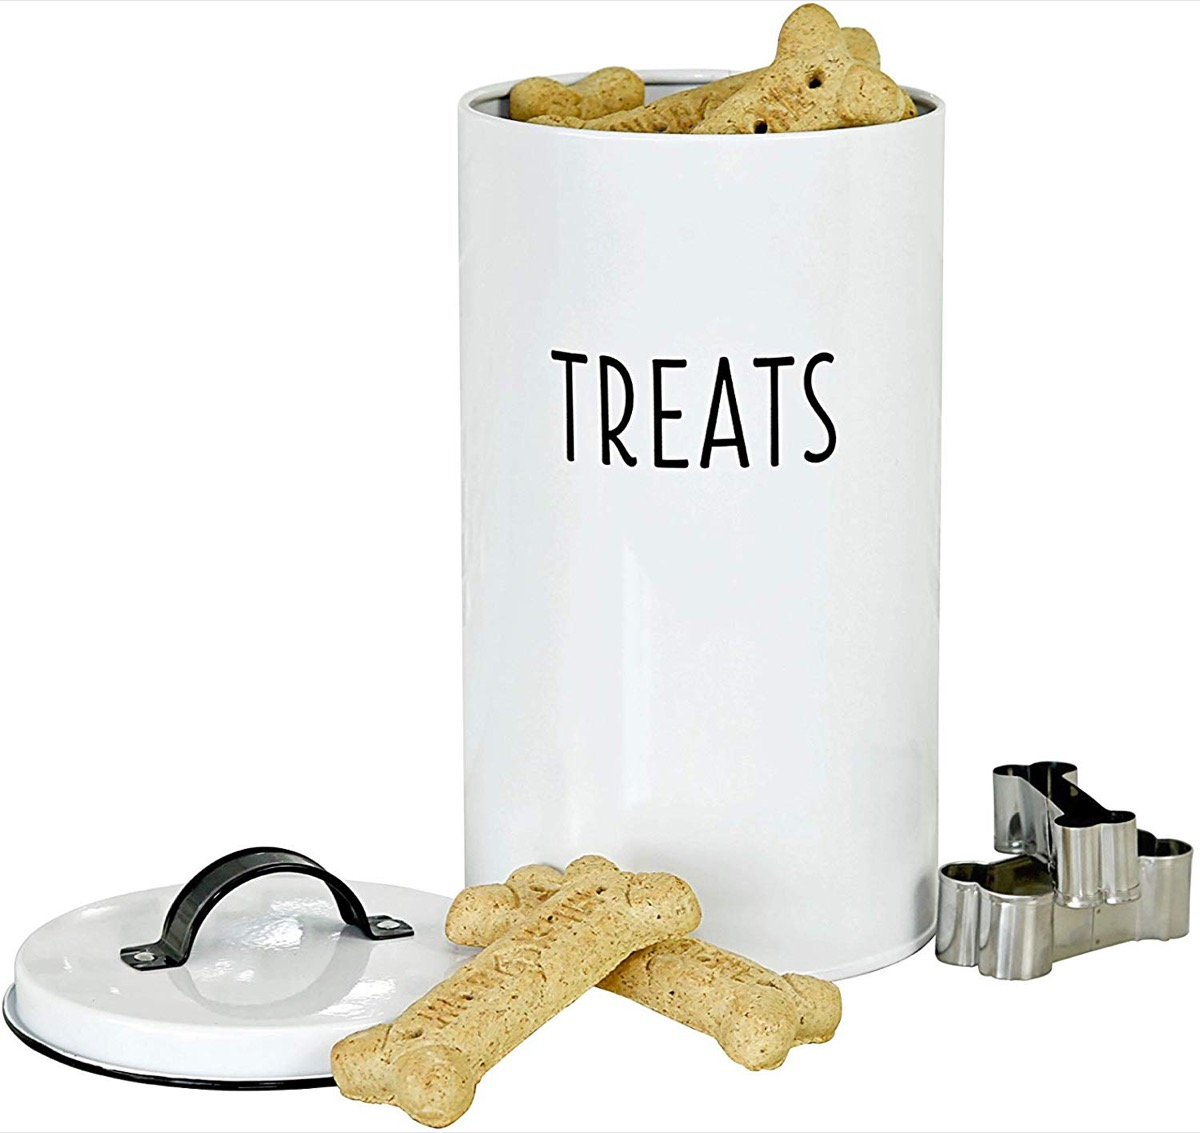 White enamel treat tin with biscuits